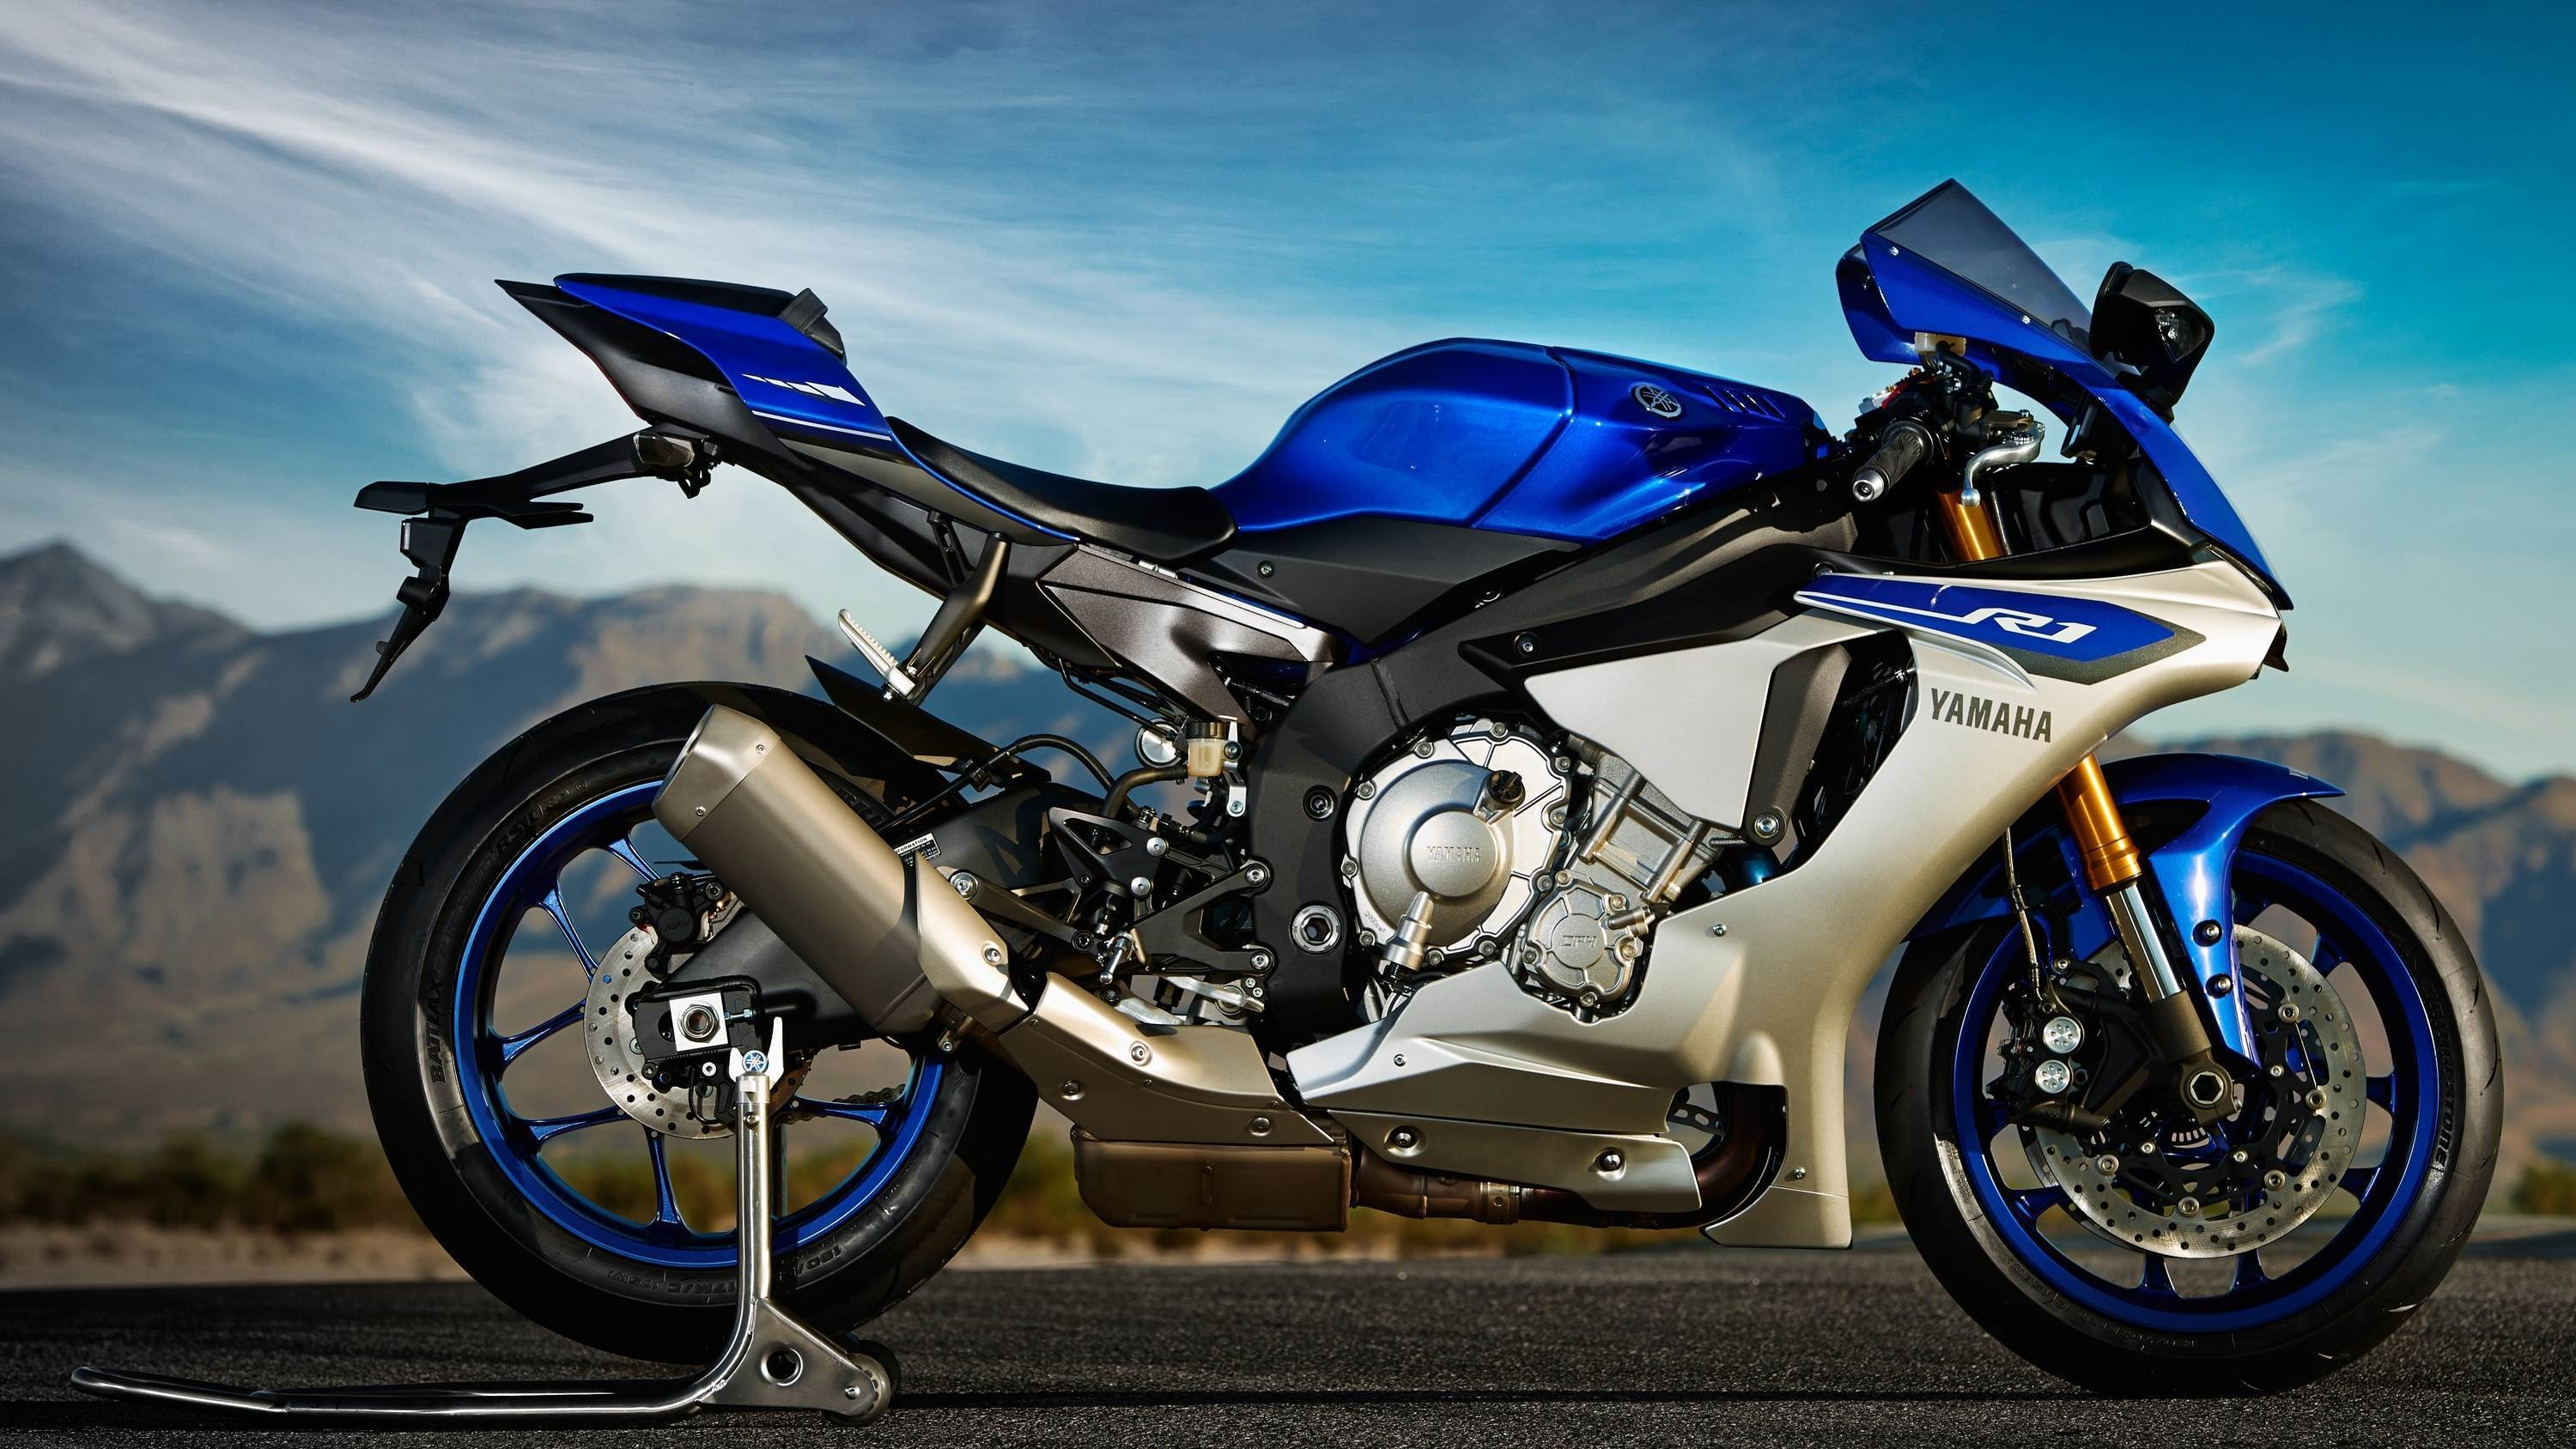 1920x1200 HD Wallpaper 1: Yamaha R1